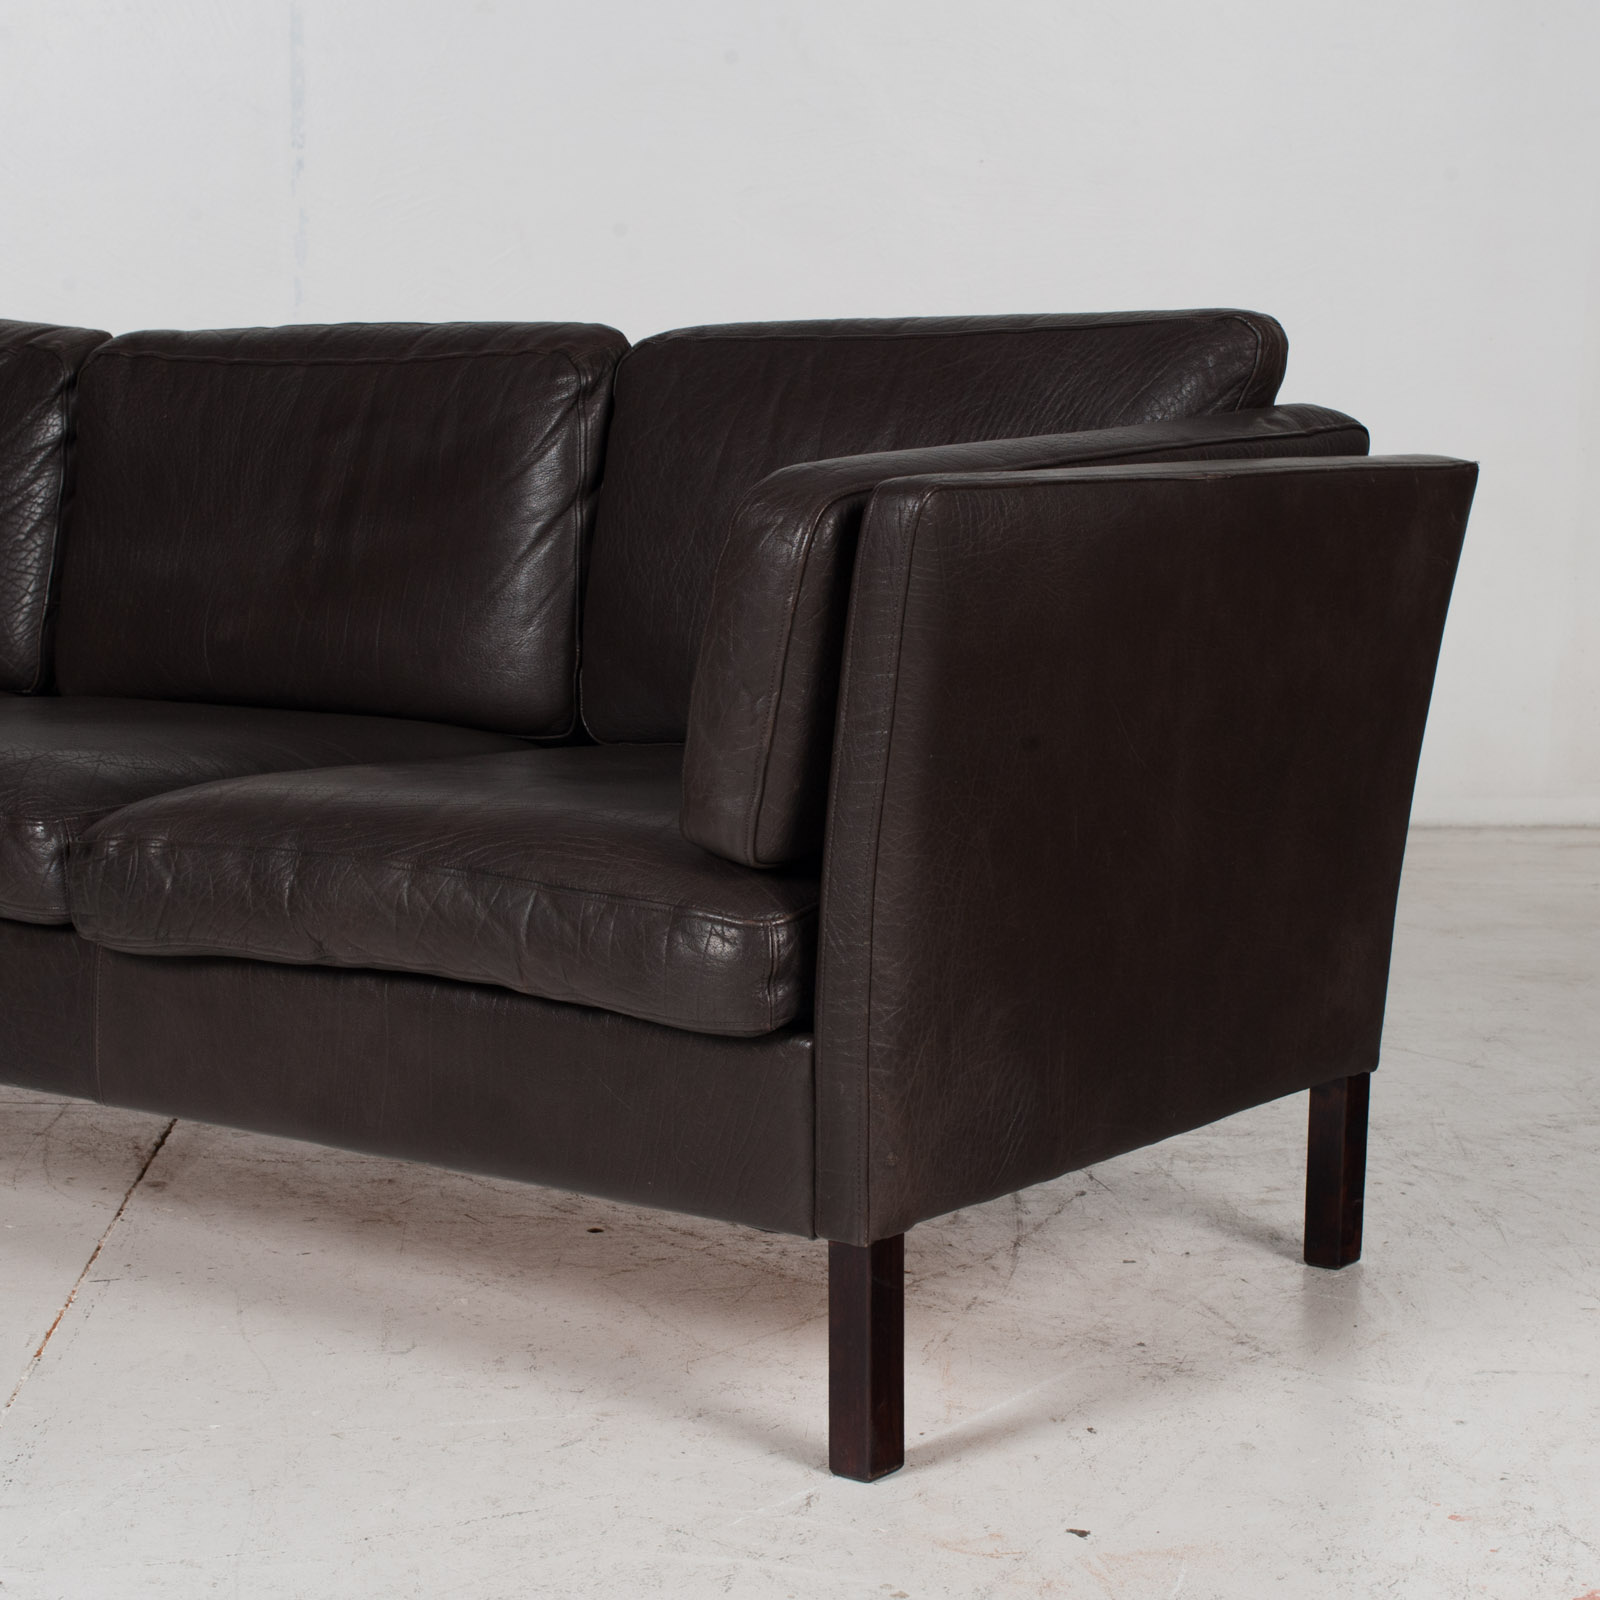 3 Seat Sofa In Dark Brown Leather, 1960s, Denmark 6